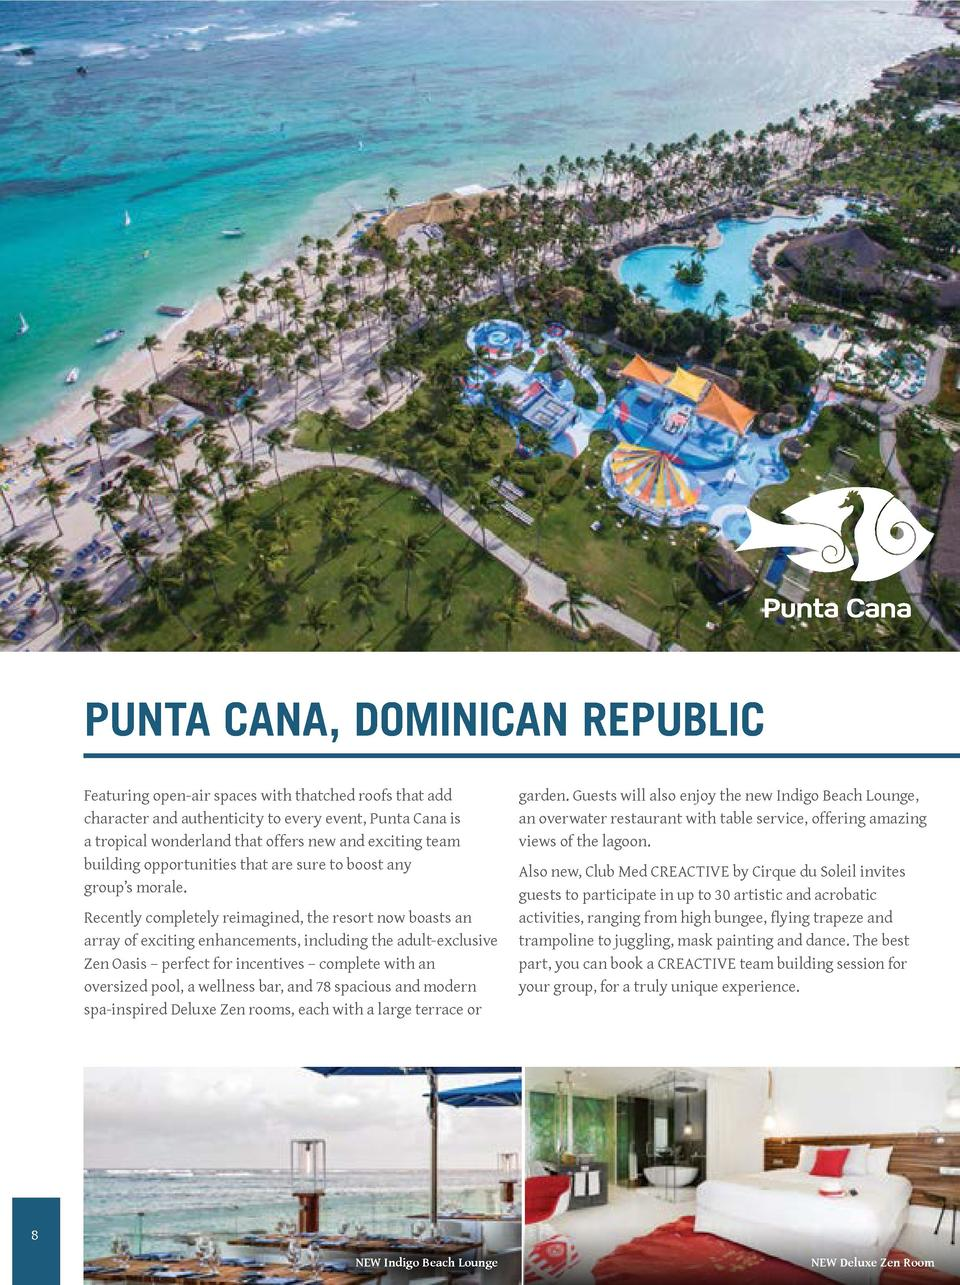 PUNTA CANA, DOMINICAN REPUBLIC Featuring open-air spaces with thatched roofs that add character and authenticity to every ...